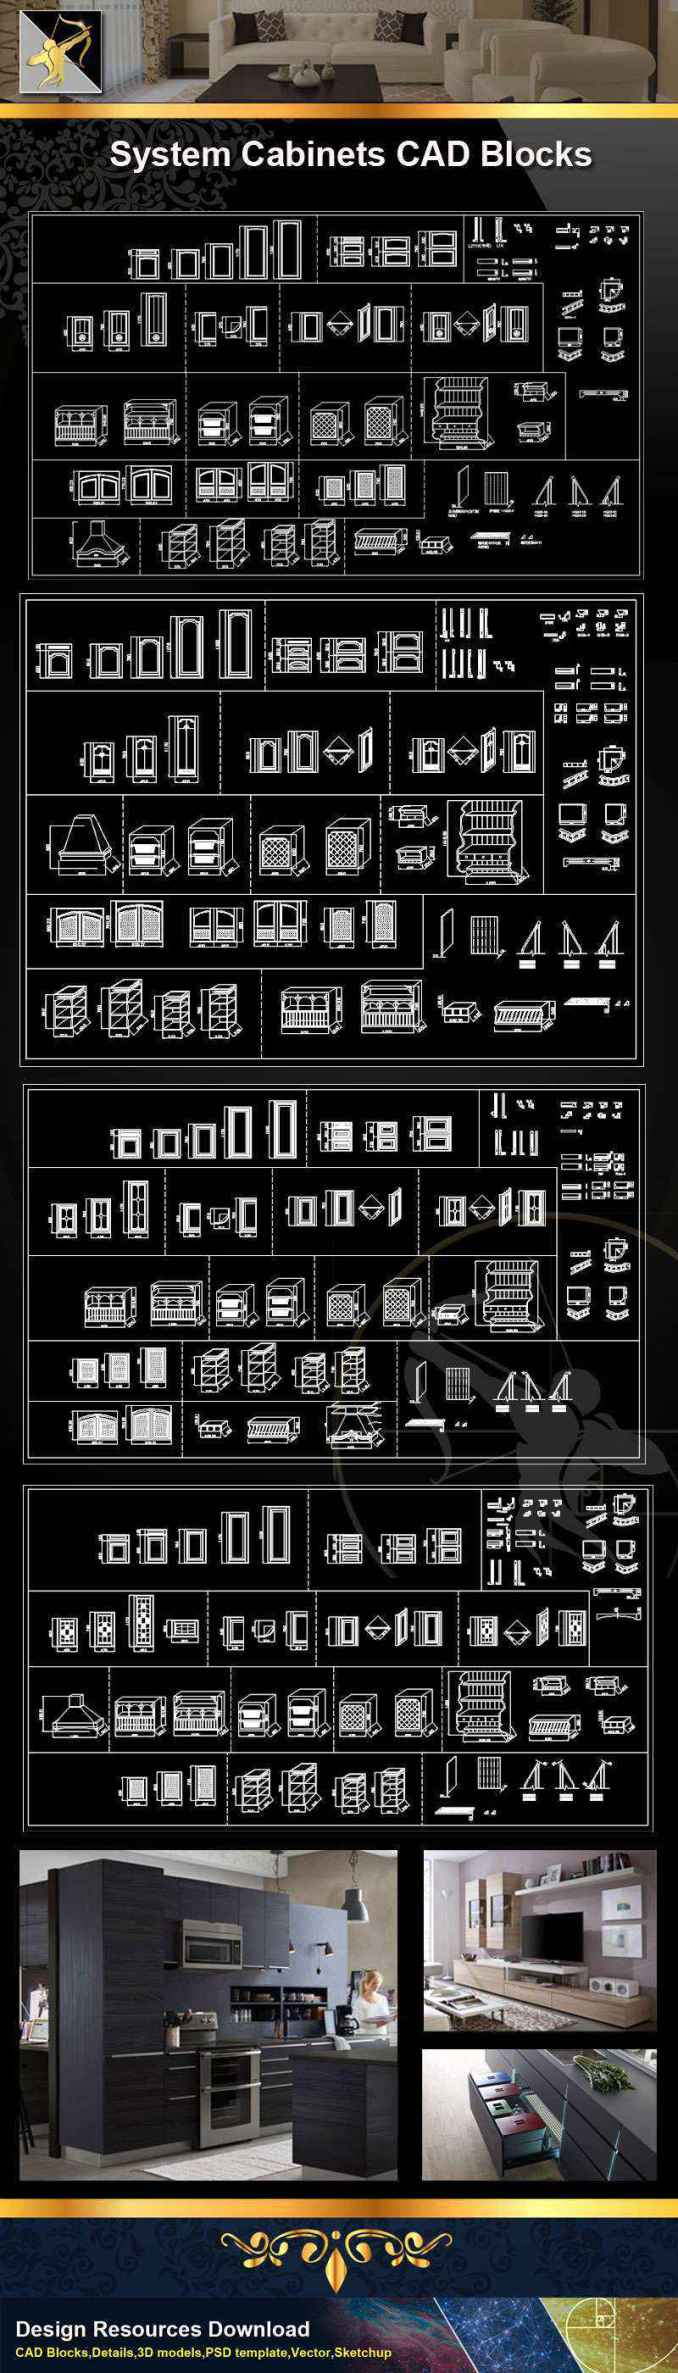 ★【 System Cabinets CAD Drawings V 1】@Autocad Blocks,Drawings,CAD  Details,Elevation